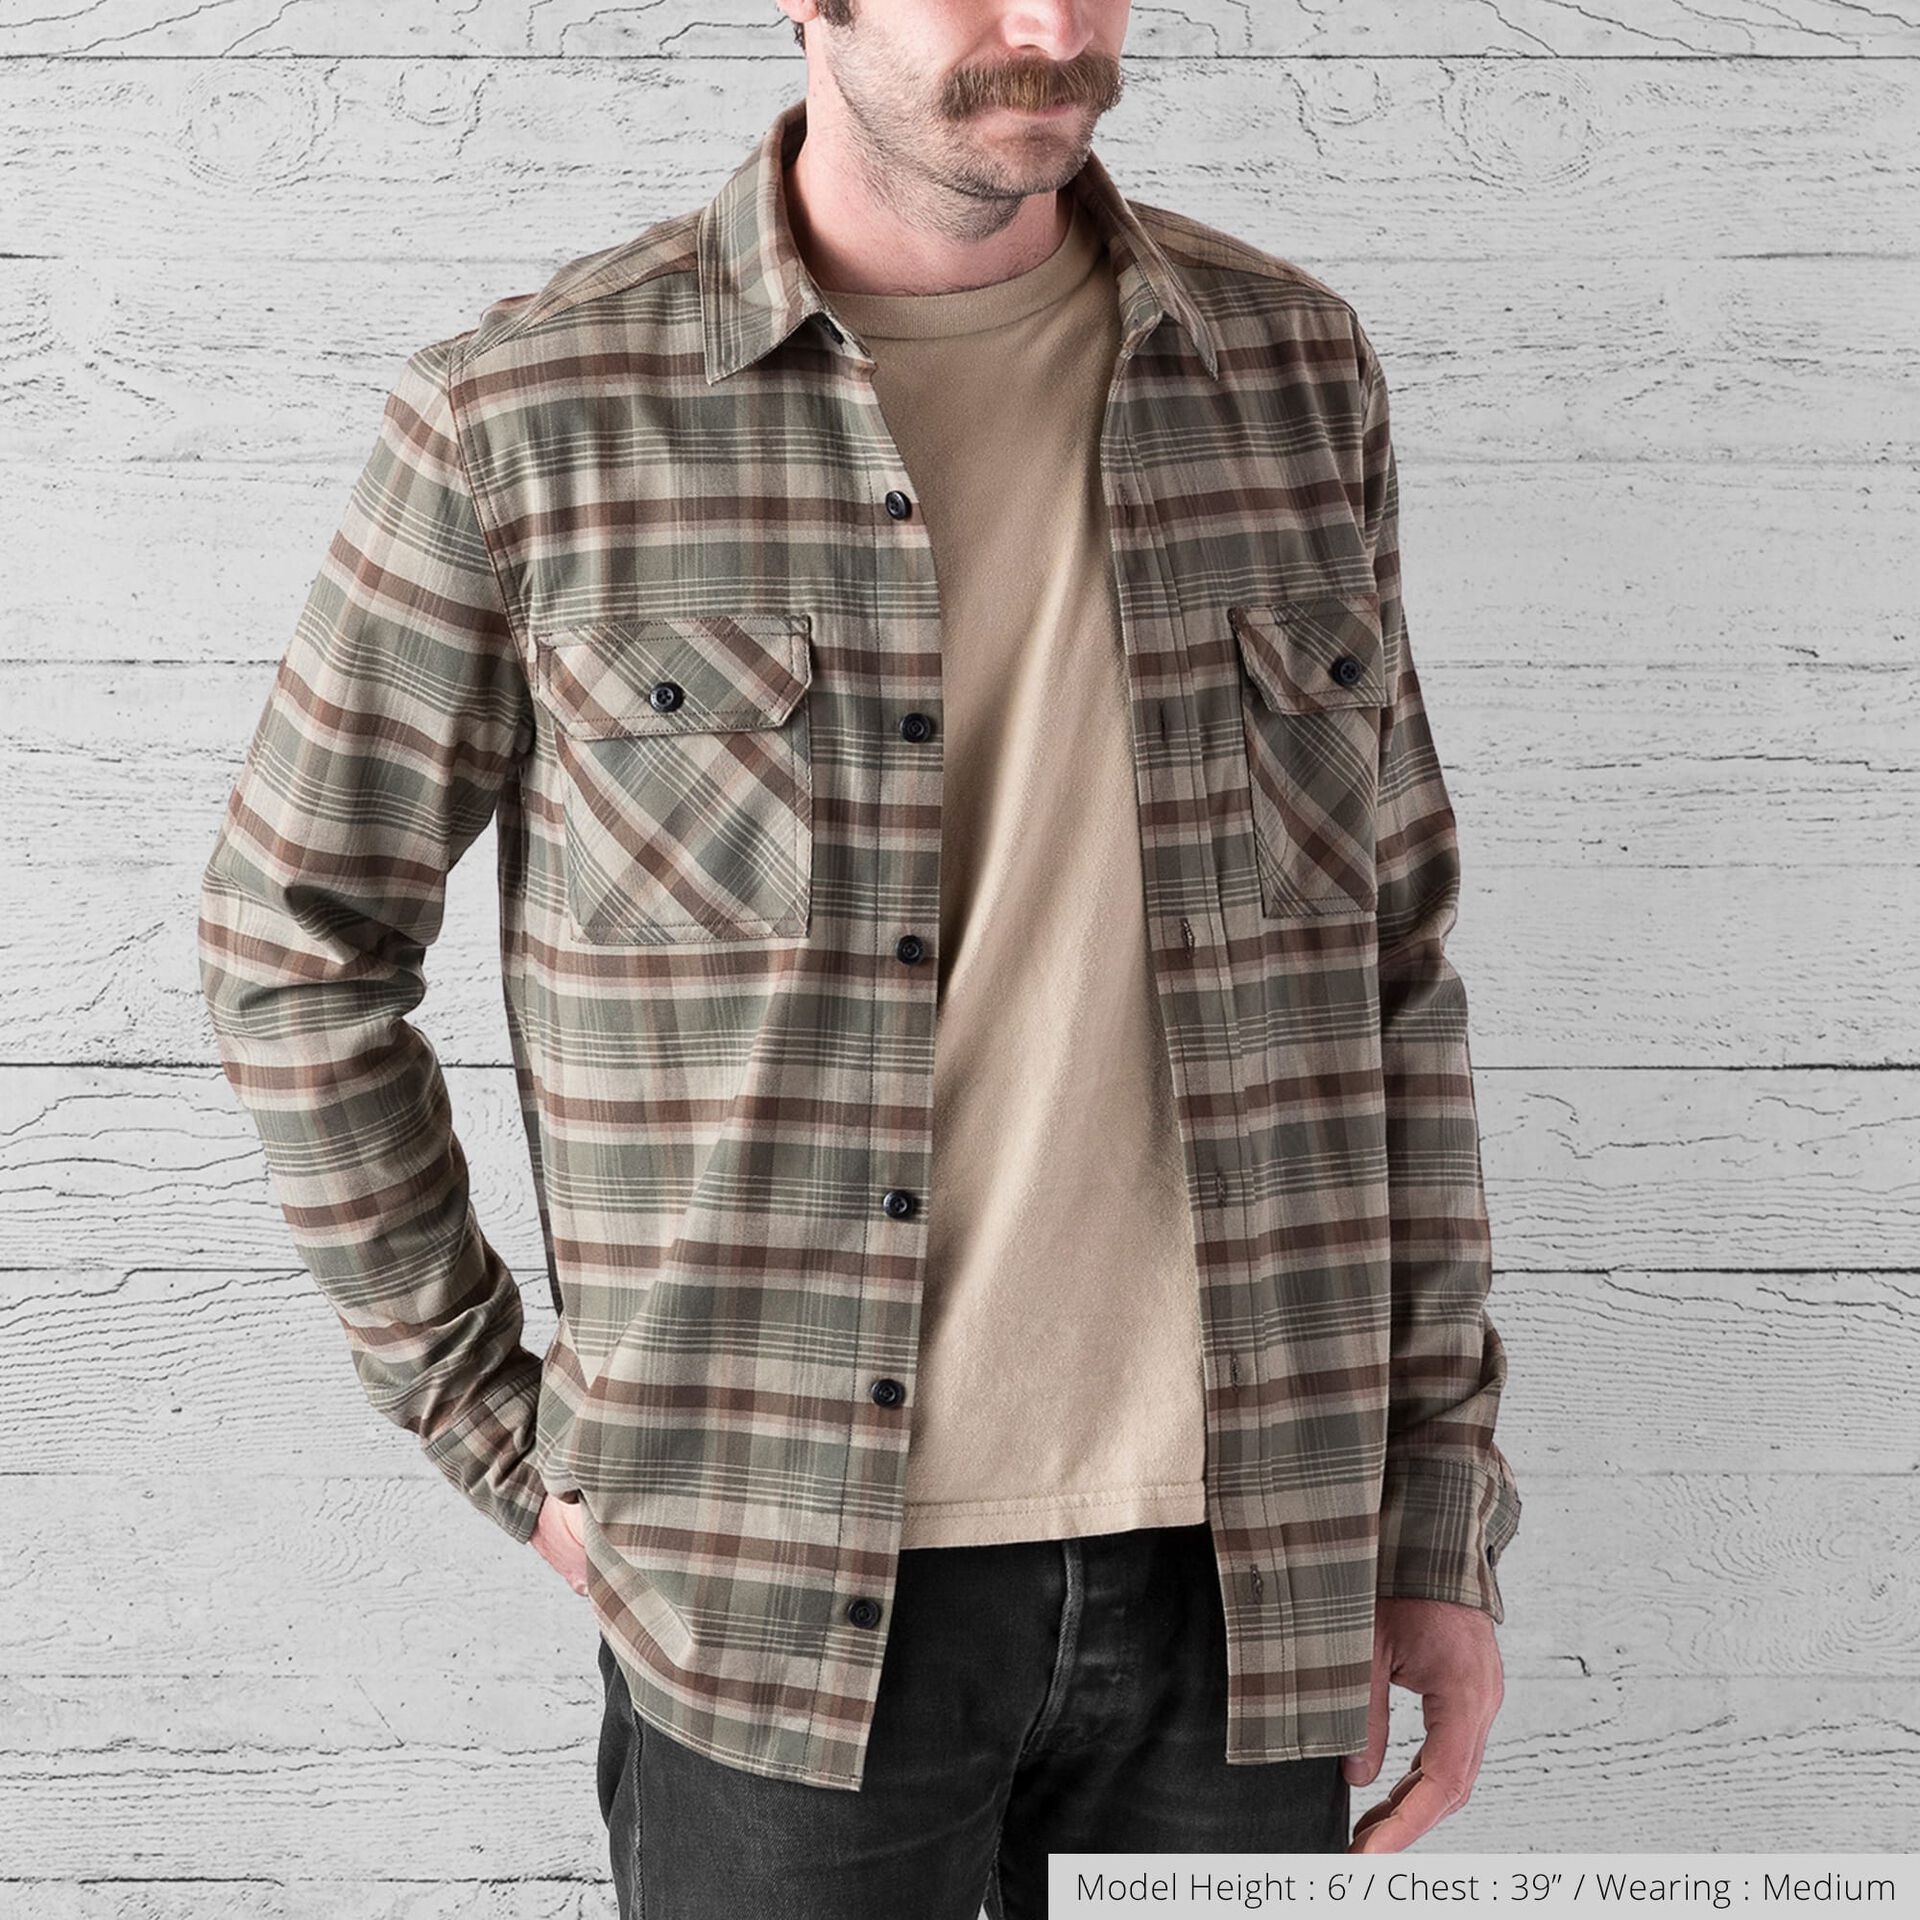 Woven Stretch Workshirt in Olive Leaf Plaid - wide view.